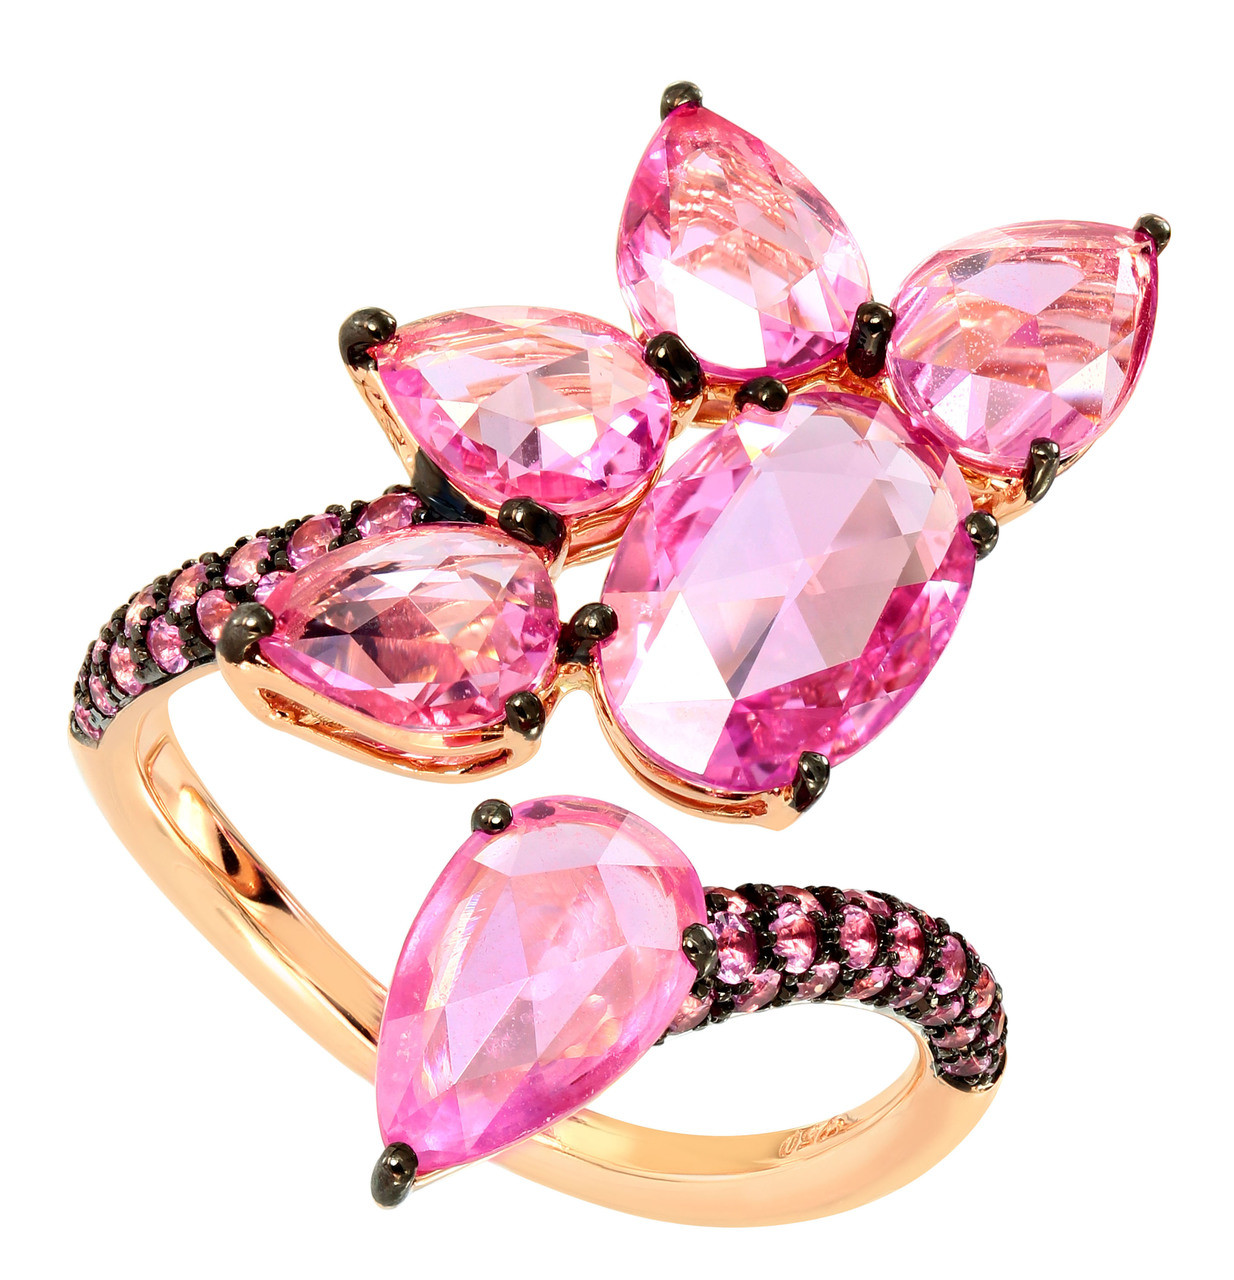 d2693d2c45deb Pink Sapphire Floral Cocktail Ring